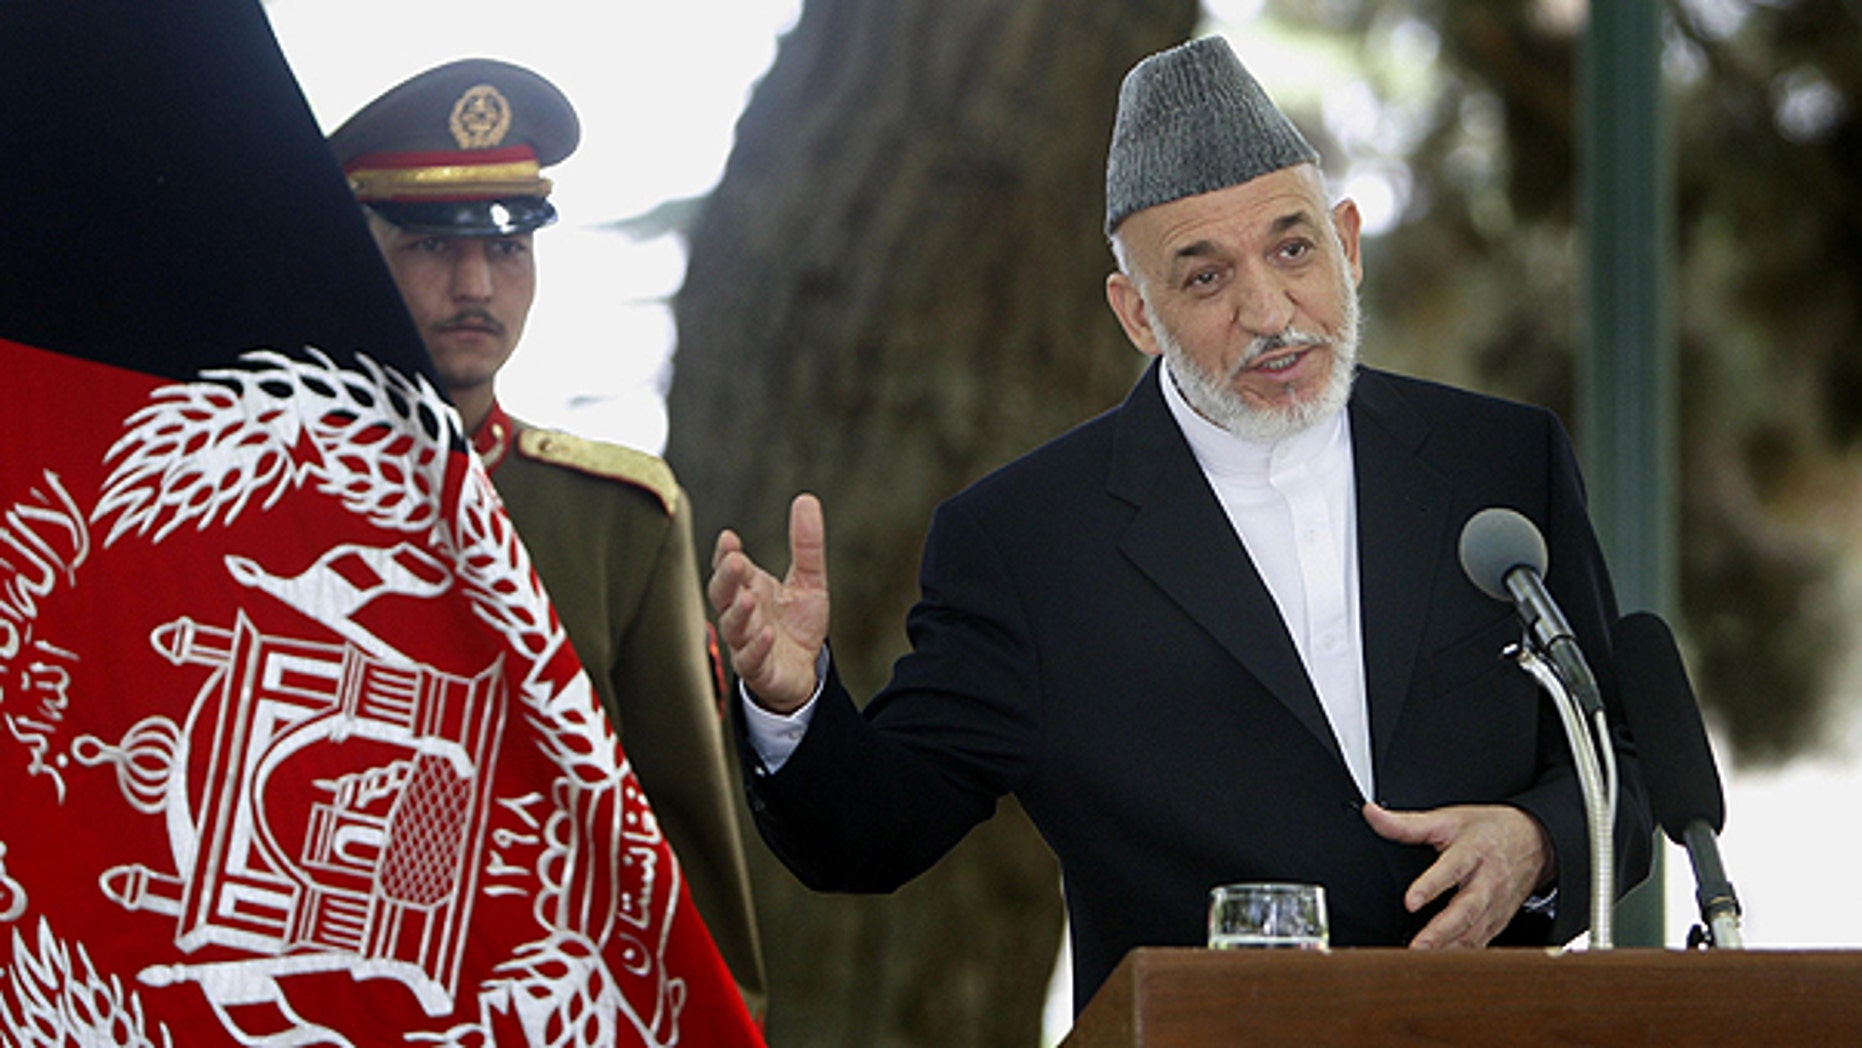 May 24: Afghan President Hamid Karzai, right, addresses a joint press conference with NATO Secretary General Anders Fogh Rasmussen, unseen, as an Afghan Presidential bodyguard holds the Afghan flag, left, at the Presidential palace in Kabul, Afghanistan.